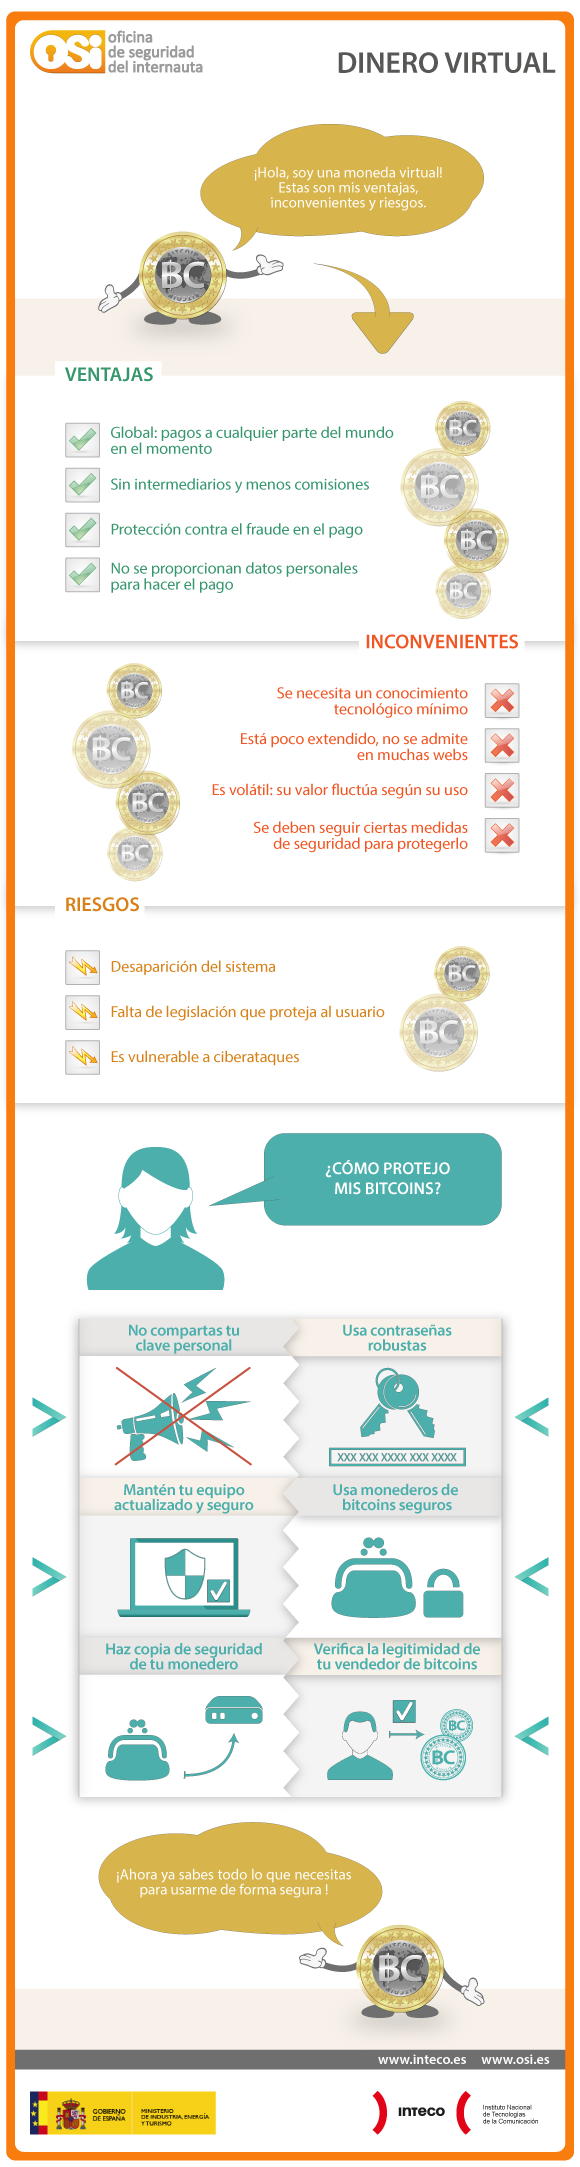 Dinero virtual: Bitcoins